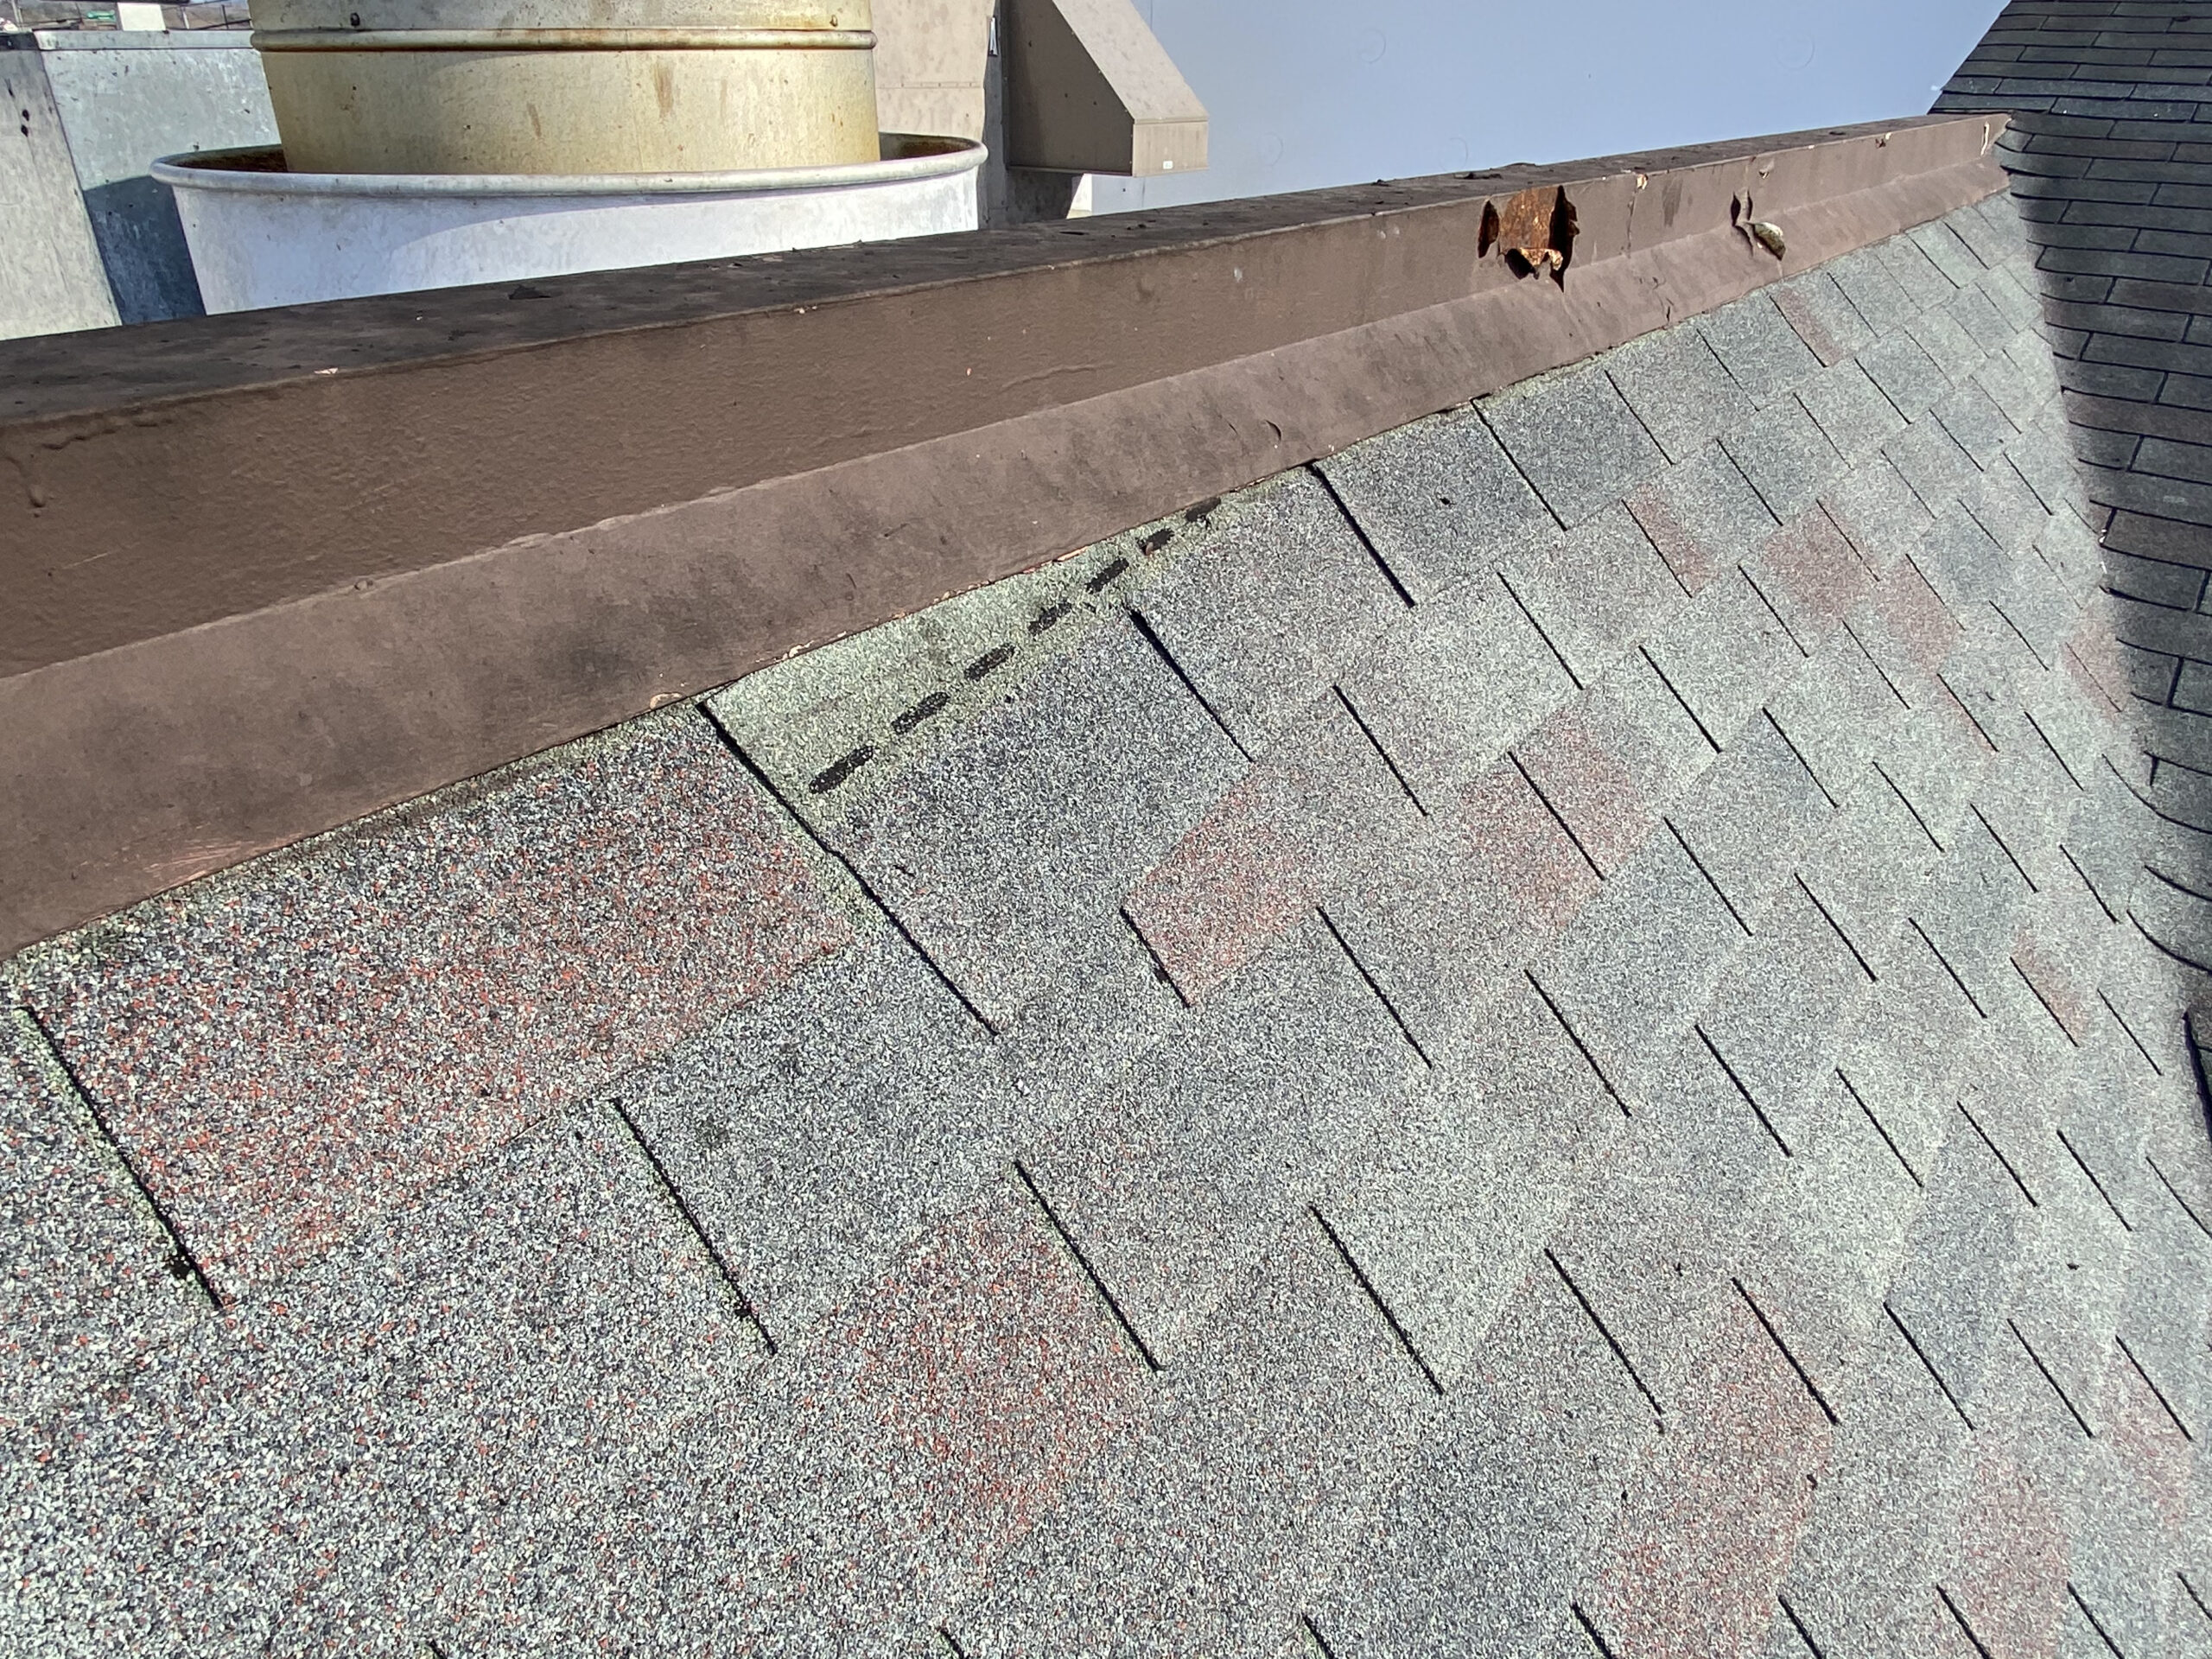 This is a picture of an old green three tab roof on a brown building